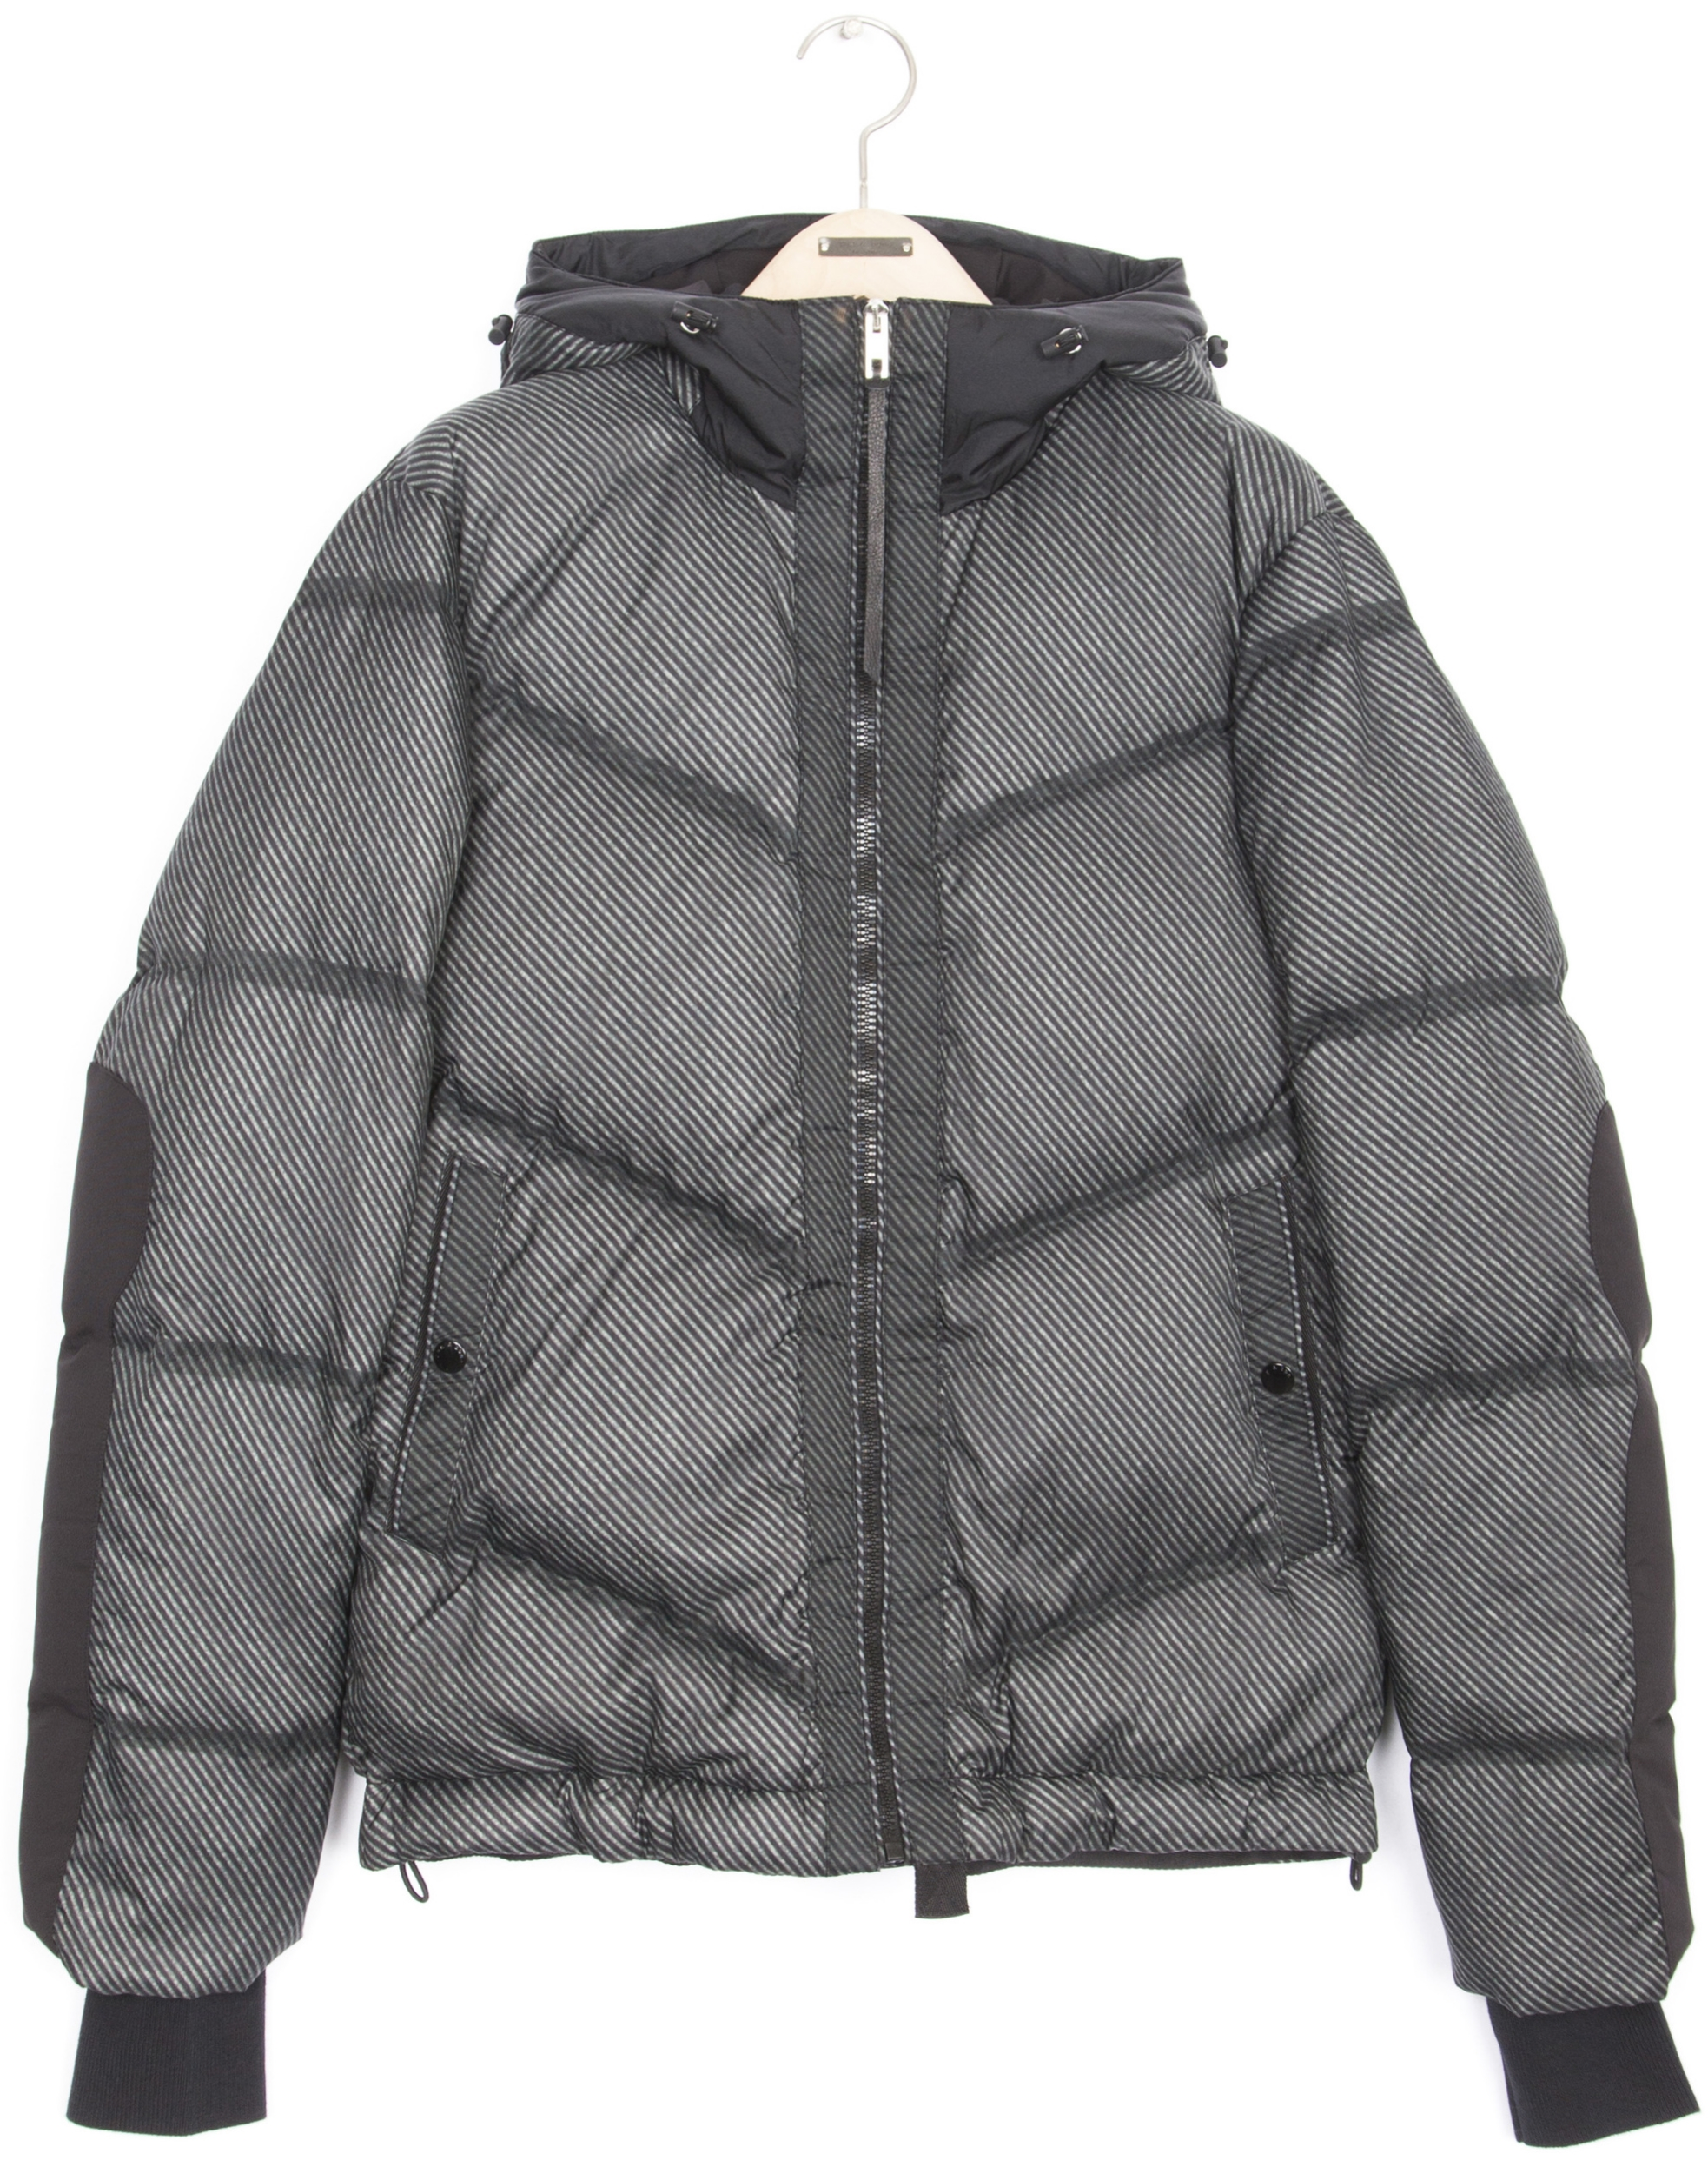 rag & bone Sleet Jacket, $995